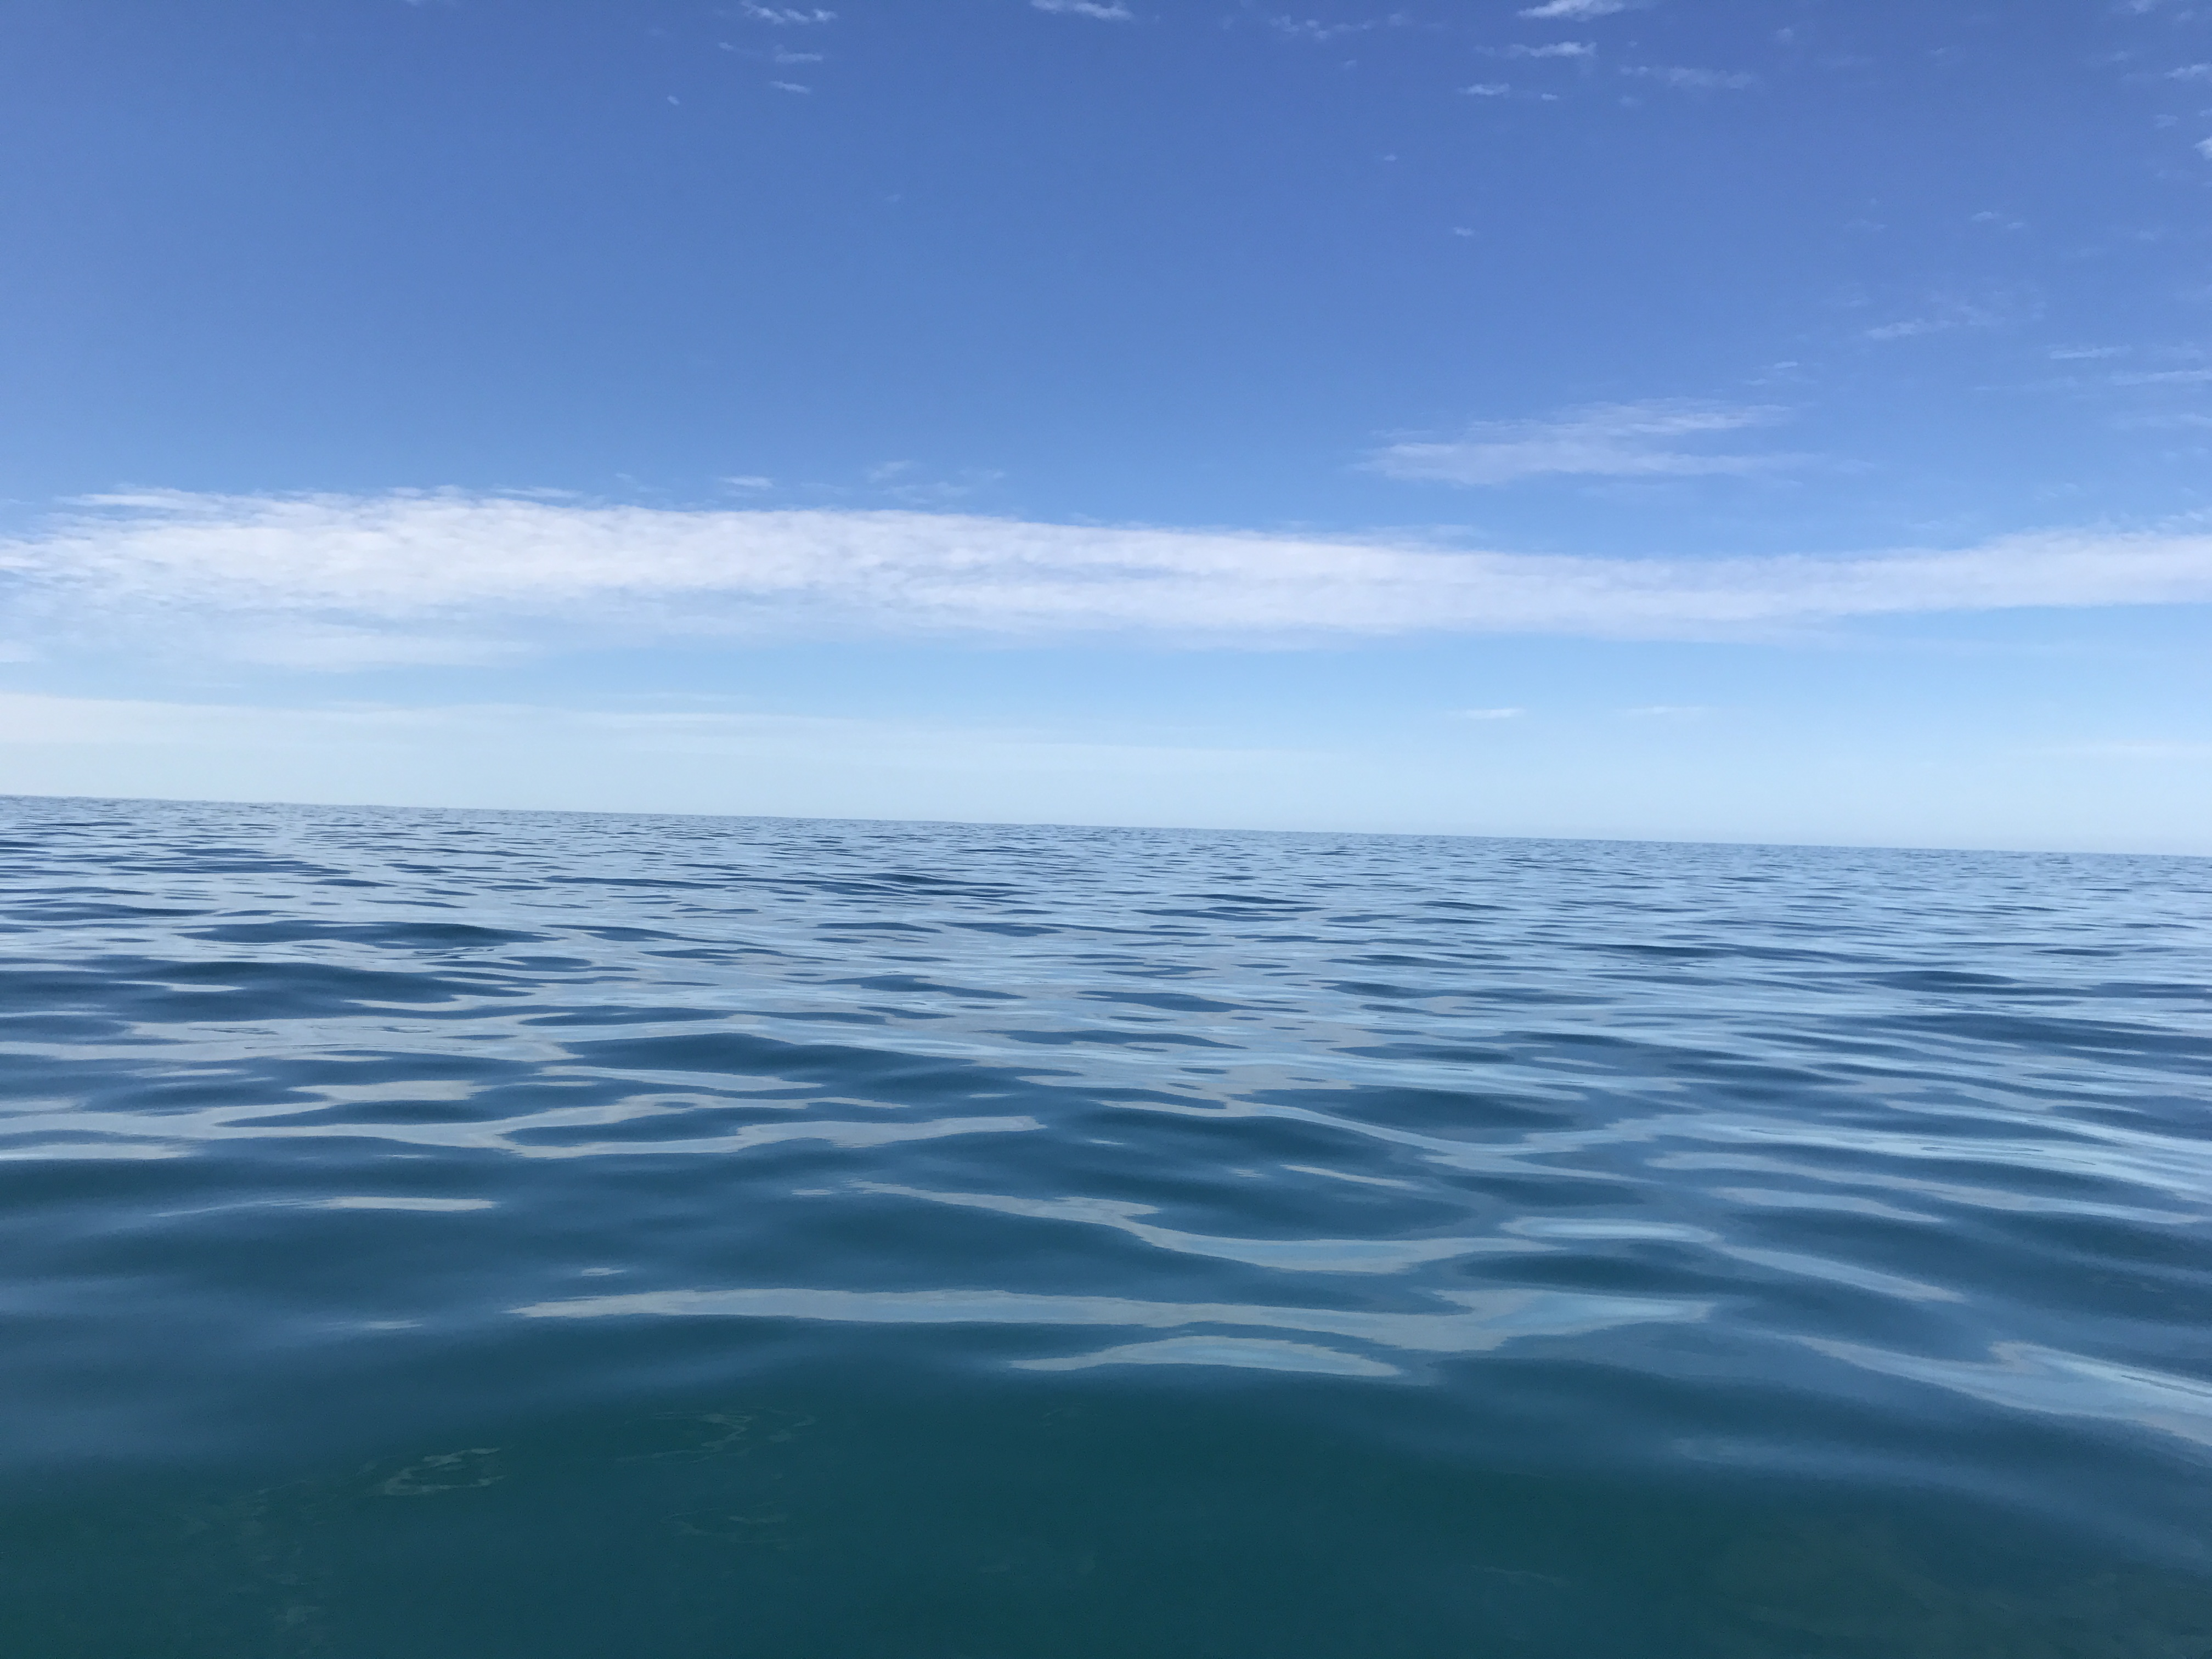 The view from the boat over Easter